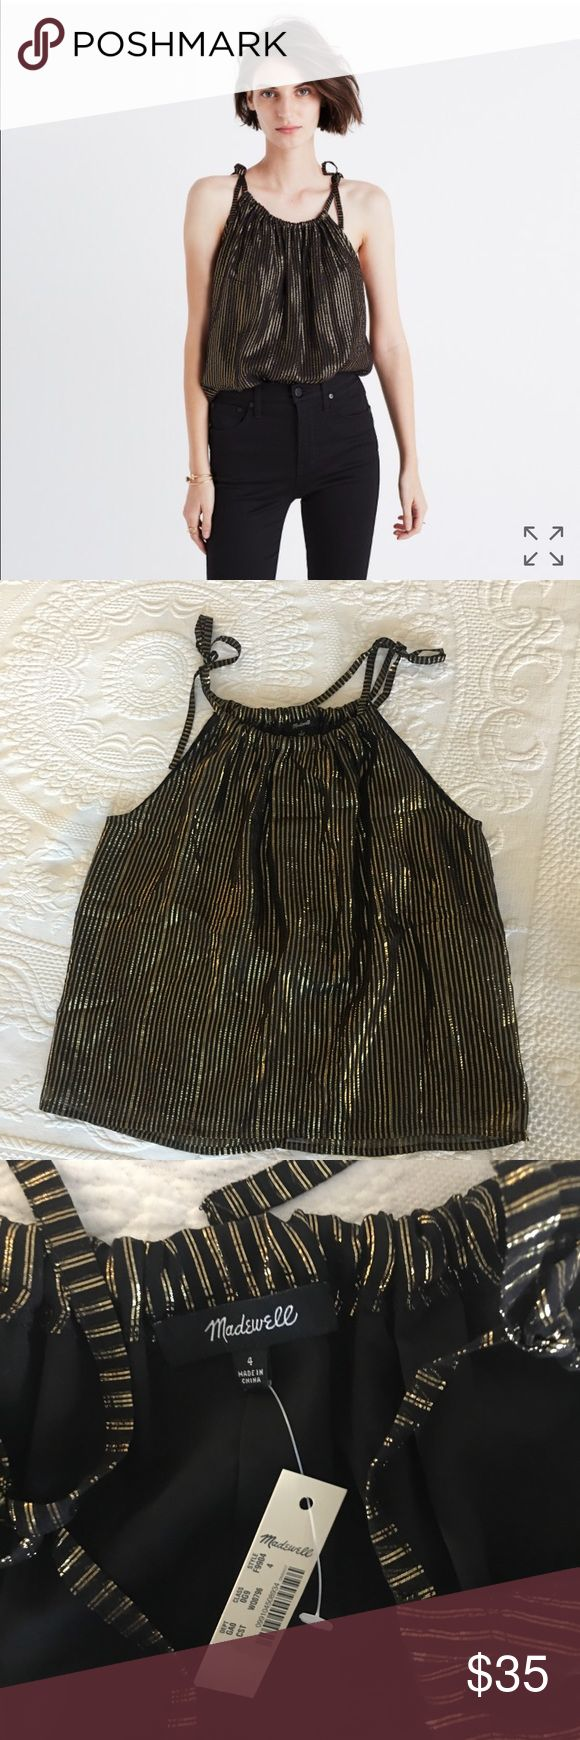 NWT Madewell Metallic Striped Cami Top NWT Madewell Metallic Striped Cami Top in size 4 but fits more like 6. Never worn and re-poshing because it's too big for me. Perfect for thanksgiving and Christmas season parties! Madewell Tops Tank Tops